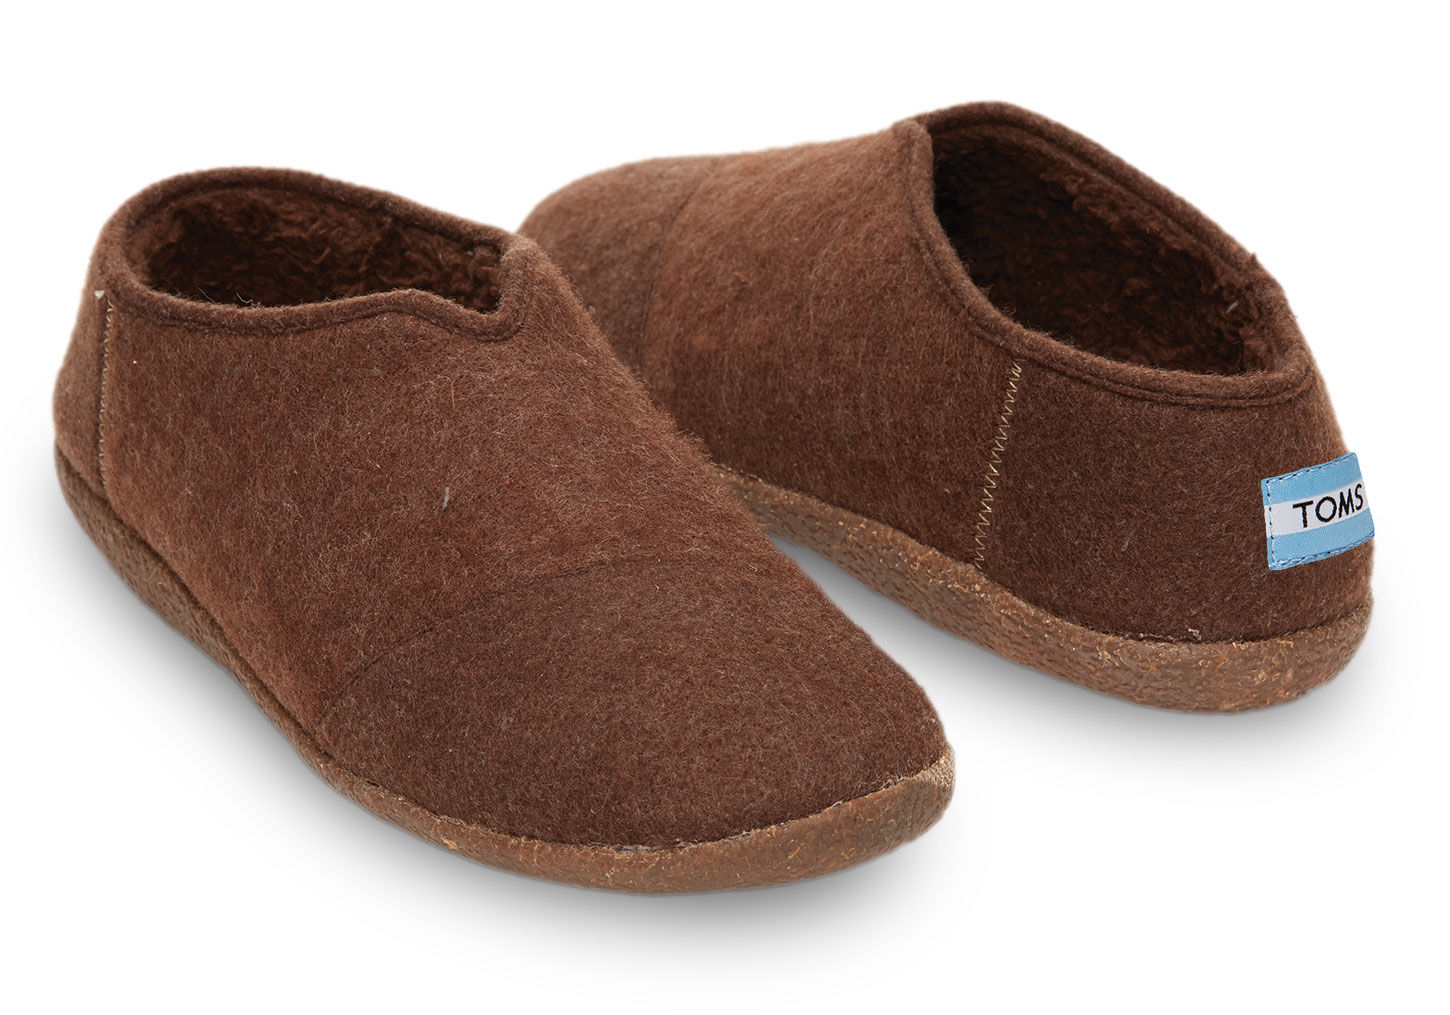 3439ff223 TOMS Chocolate Wool Men's Slippers in Brown for Men - Lyst